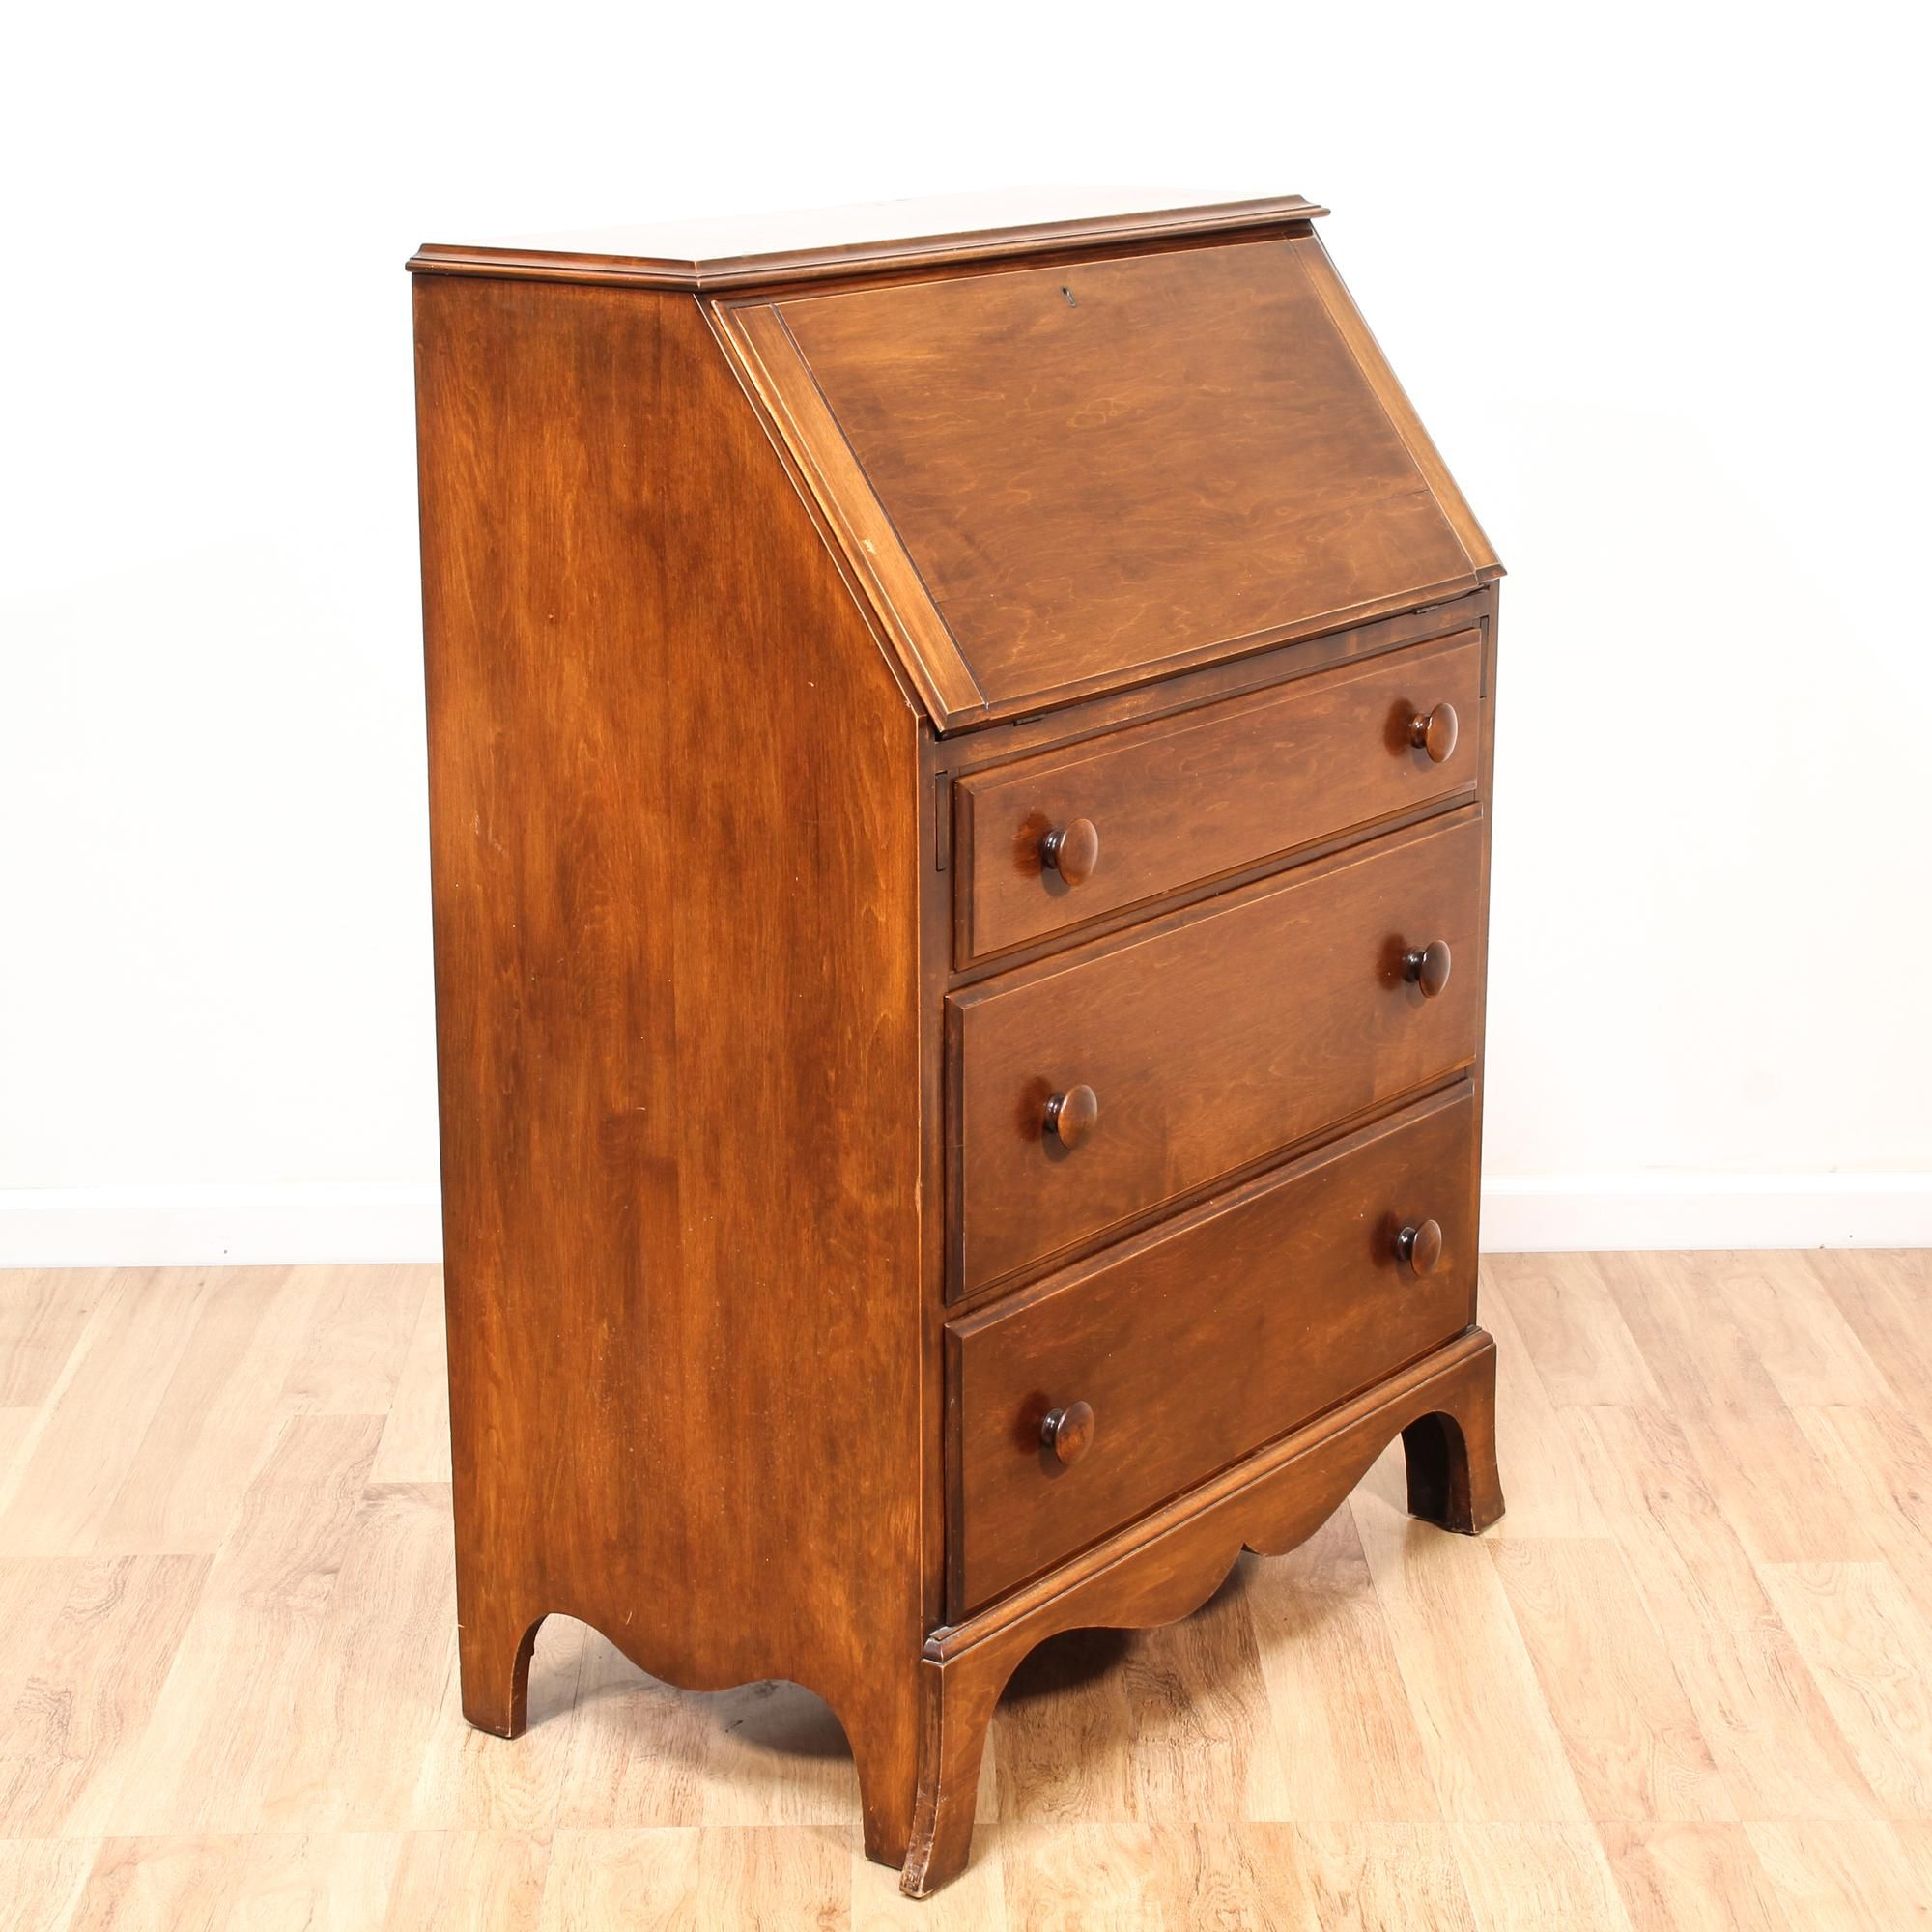 This Rustic Secretary Desk Is Featured In A Solid Wood With Raw Light Cherry Finish Dresser Good Condition 3 Large Drawers